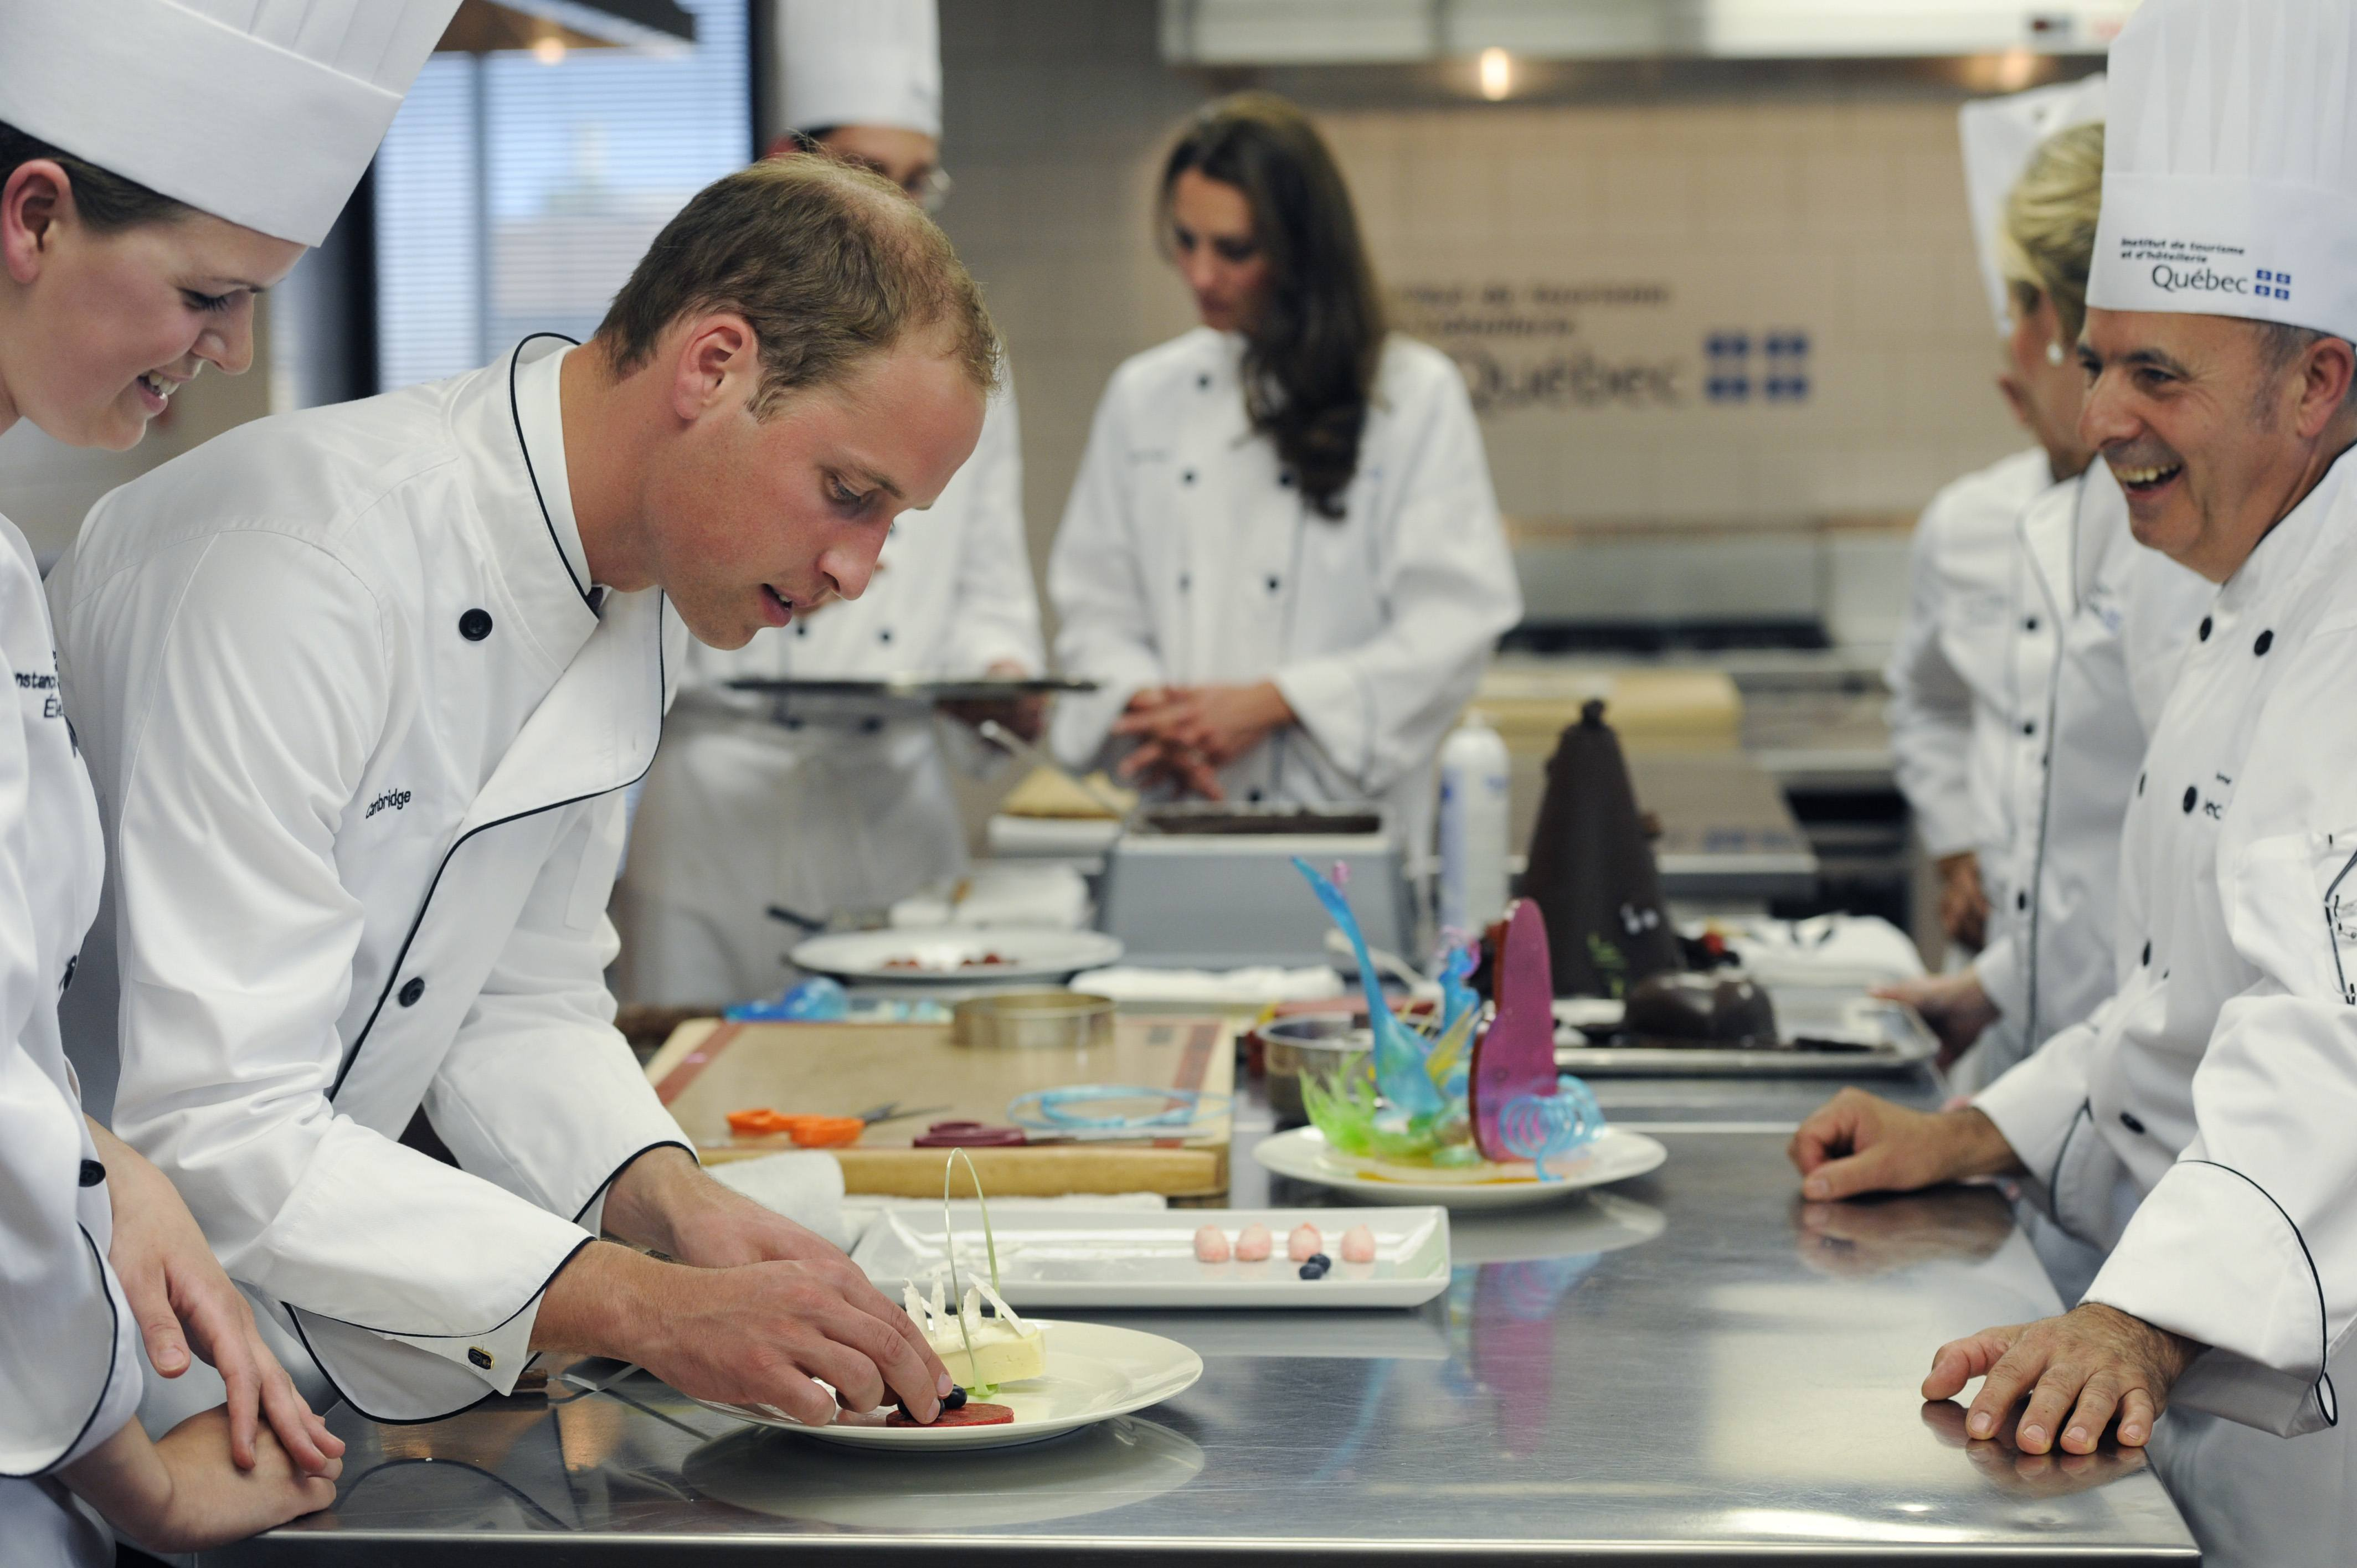 The Duke And Duchess Of Cambridge cooking